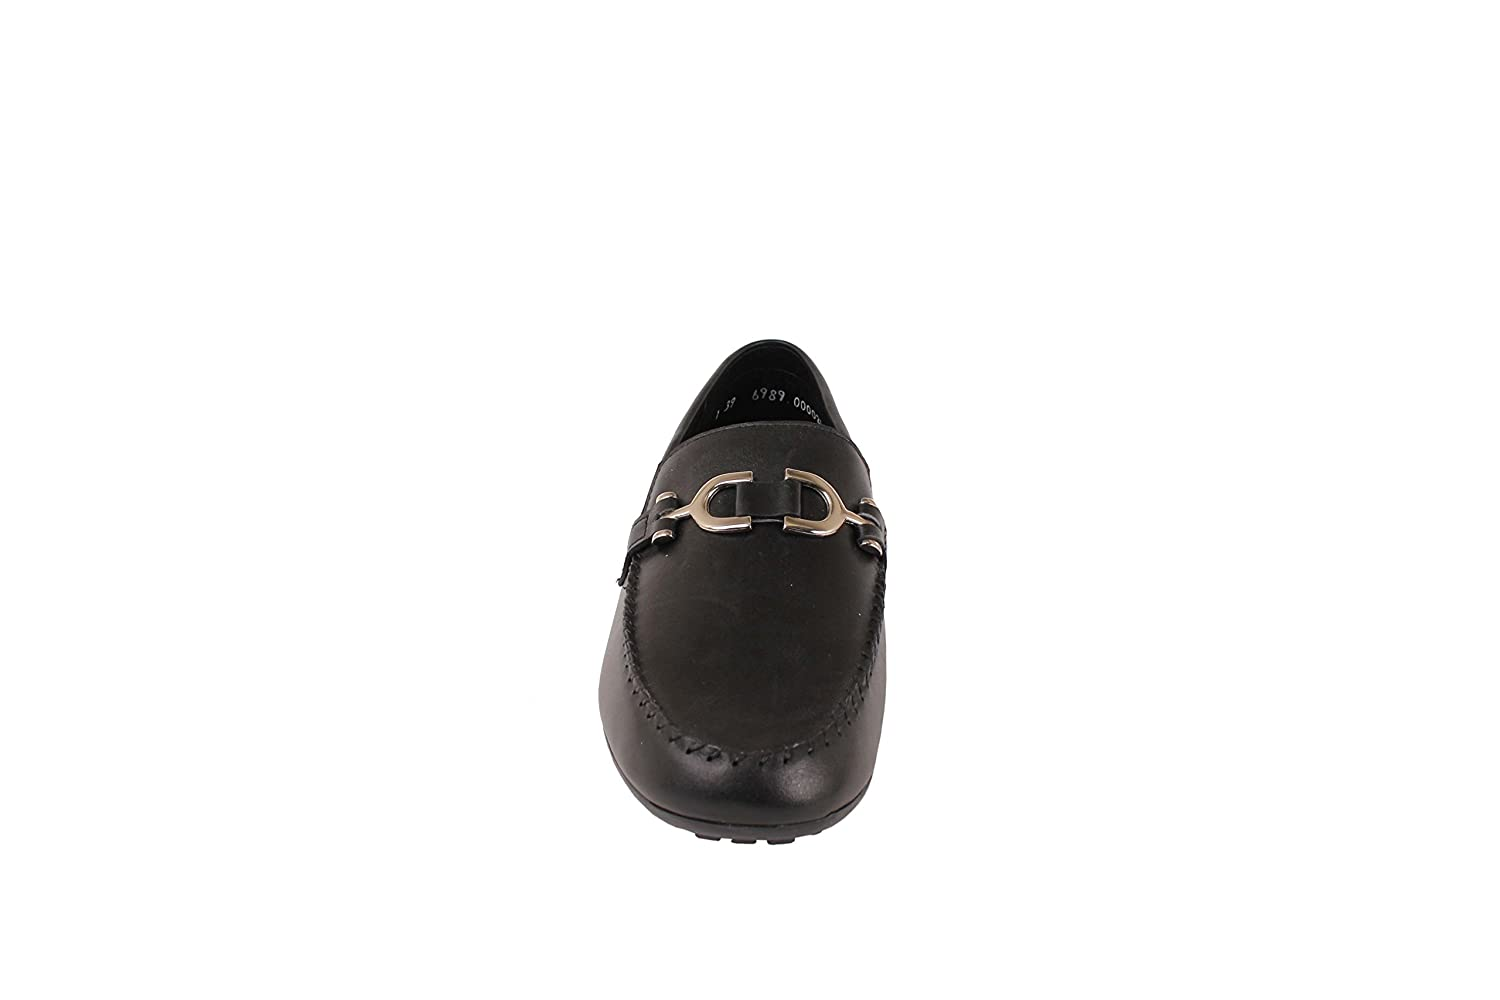 Zadas Boys Casual Dress Shoes 703 Loafers with Buckle Footwear Black Leather